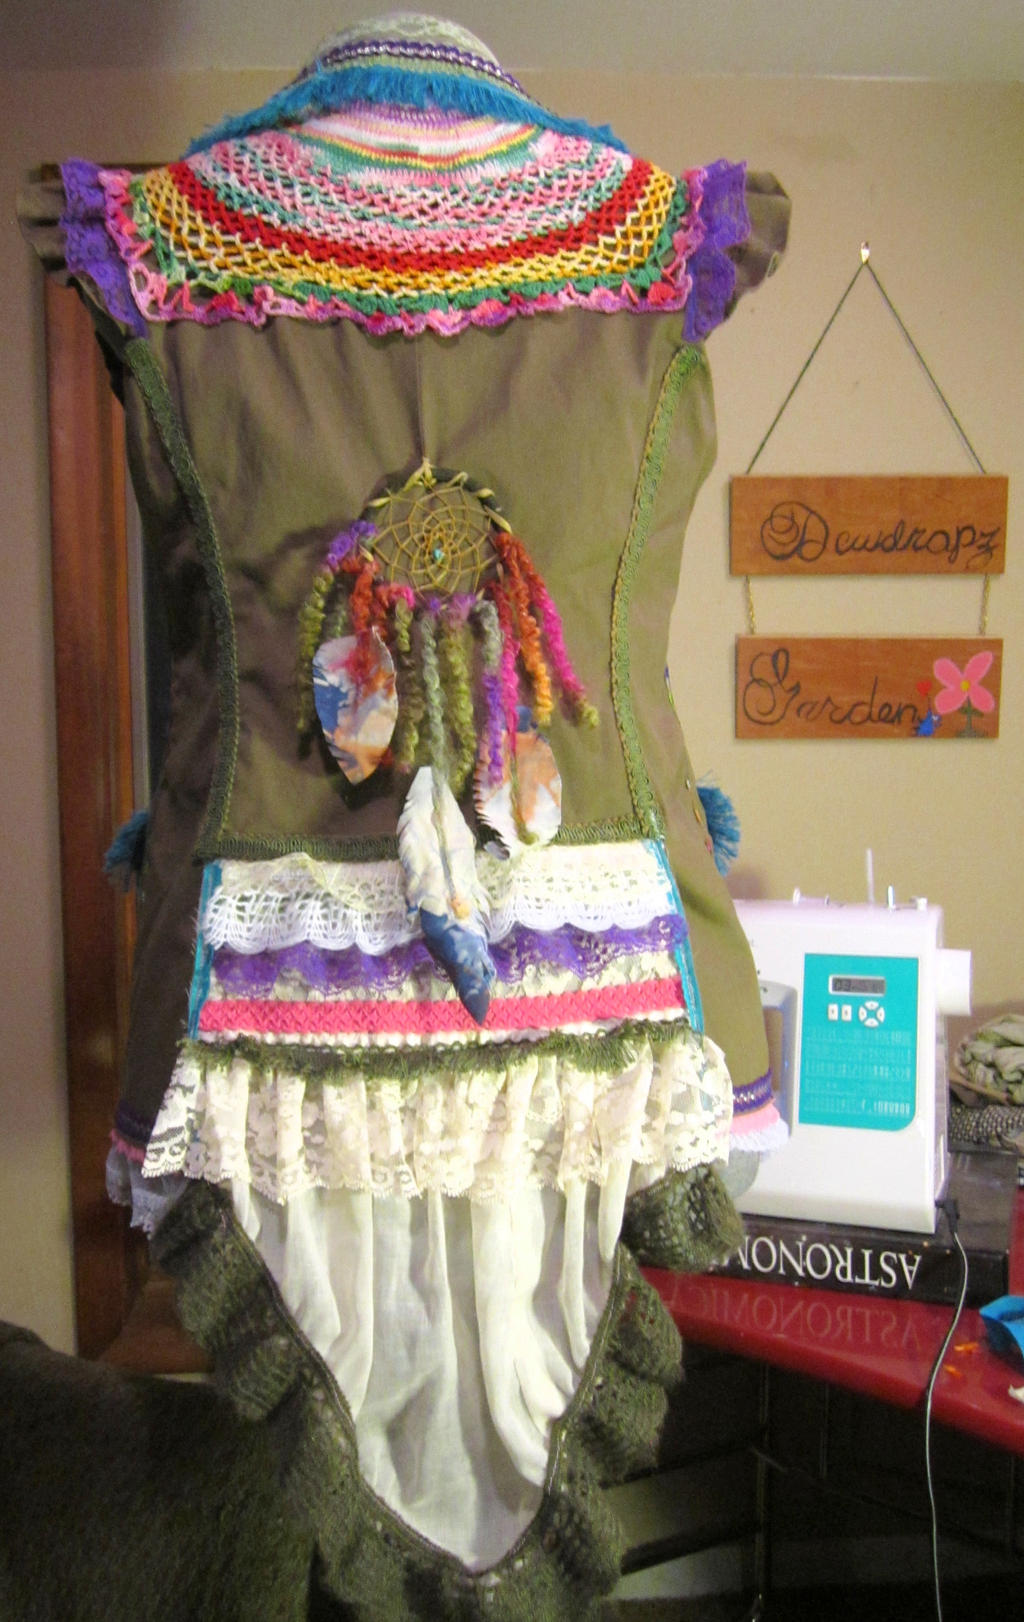 Rainbow Warrior upcycled vest by DewdropzGarden